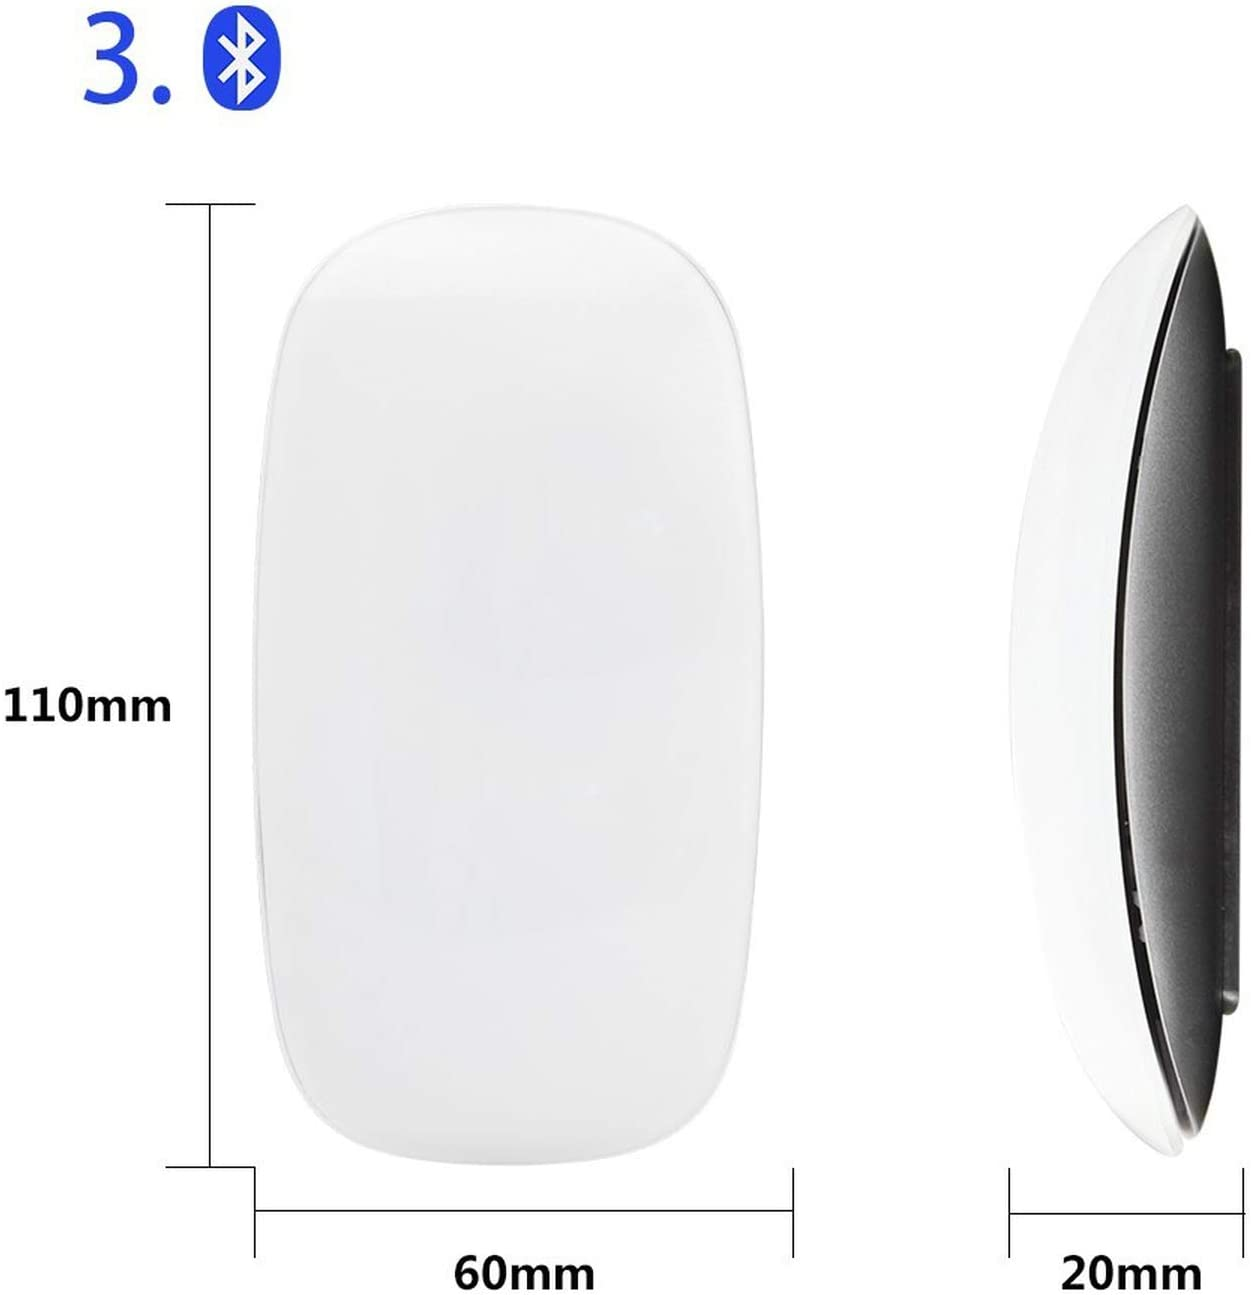 Bluetooth Wireless Magic Mouse Slim Arc Touch Mouse Ergonomic Optical USB Computer Ultra-Thin BT 3.0 Mice for Mac PC